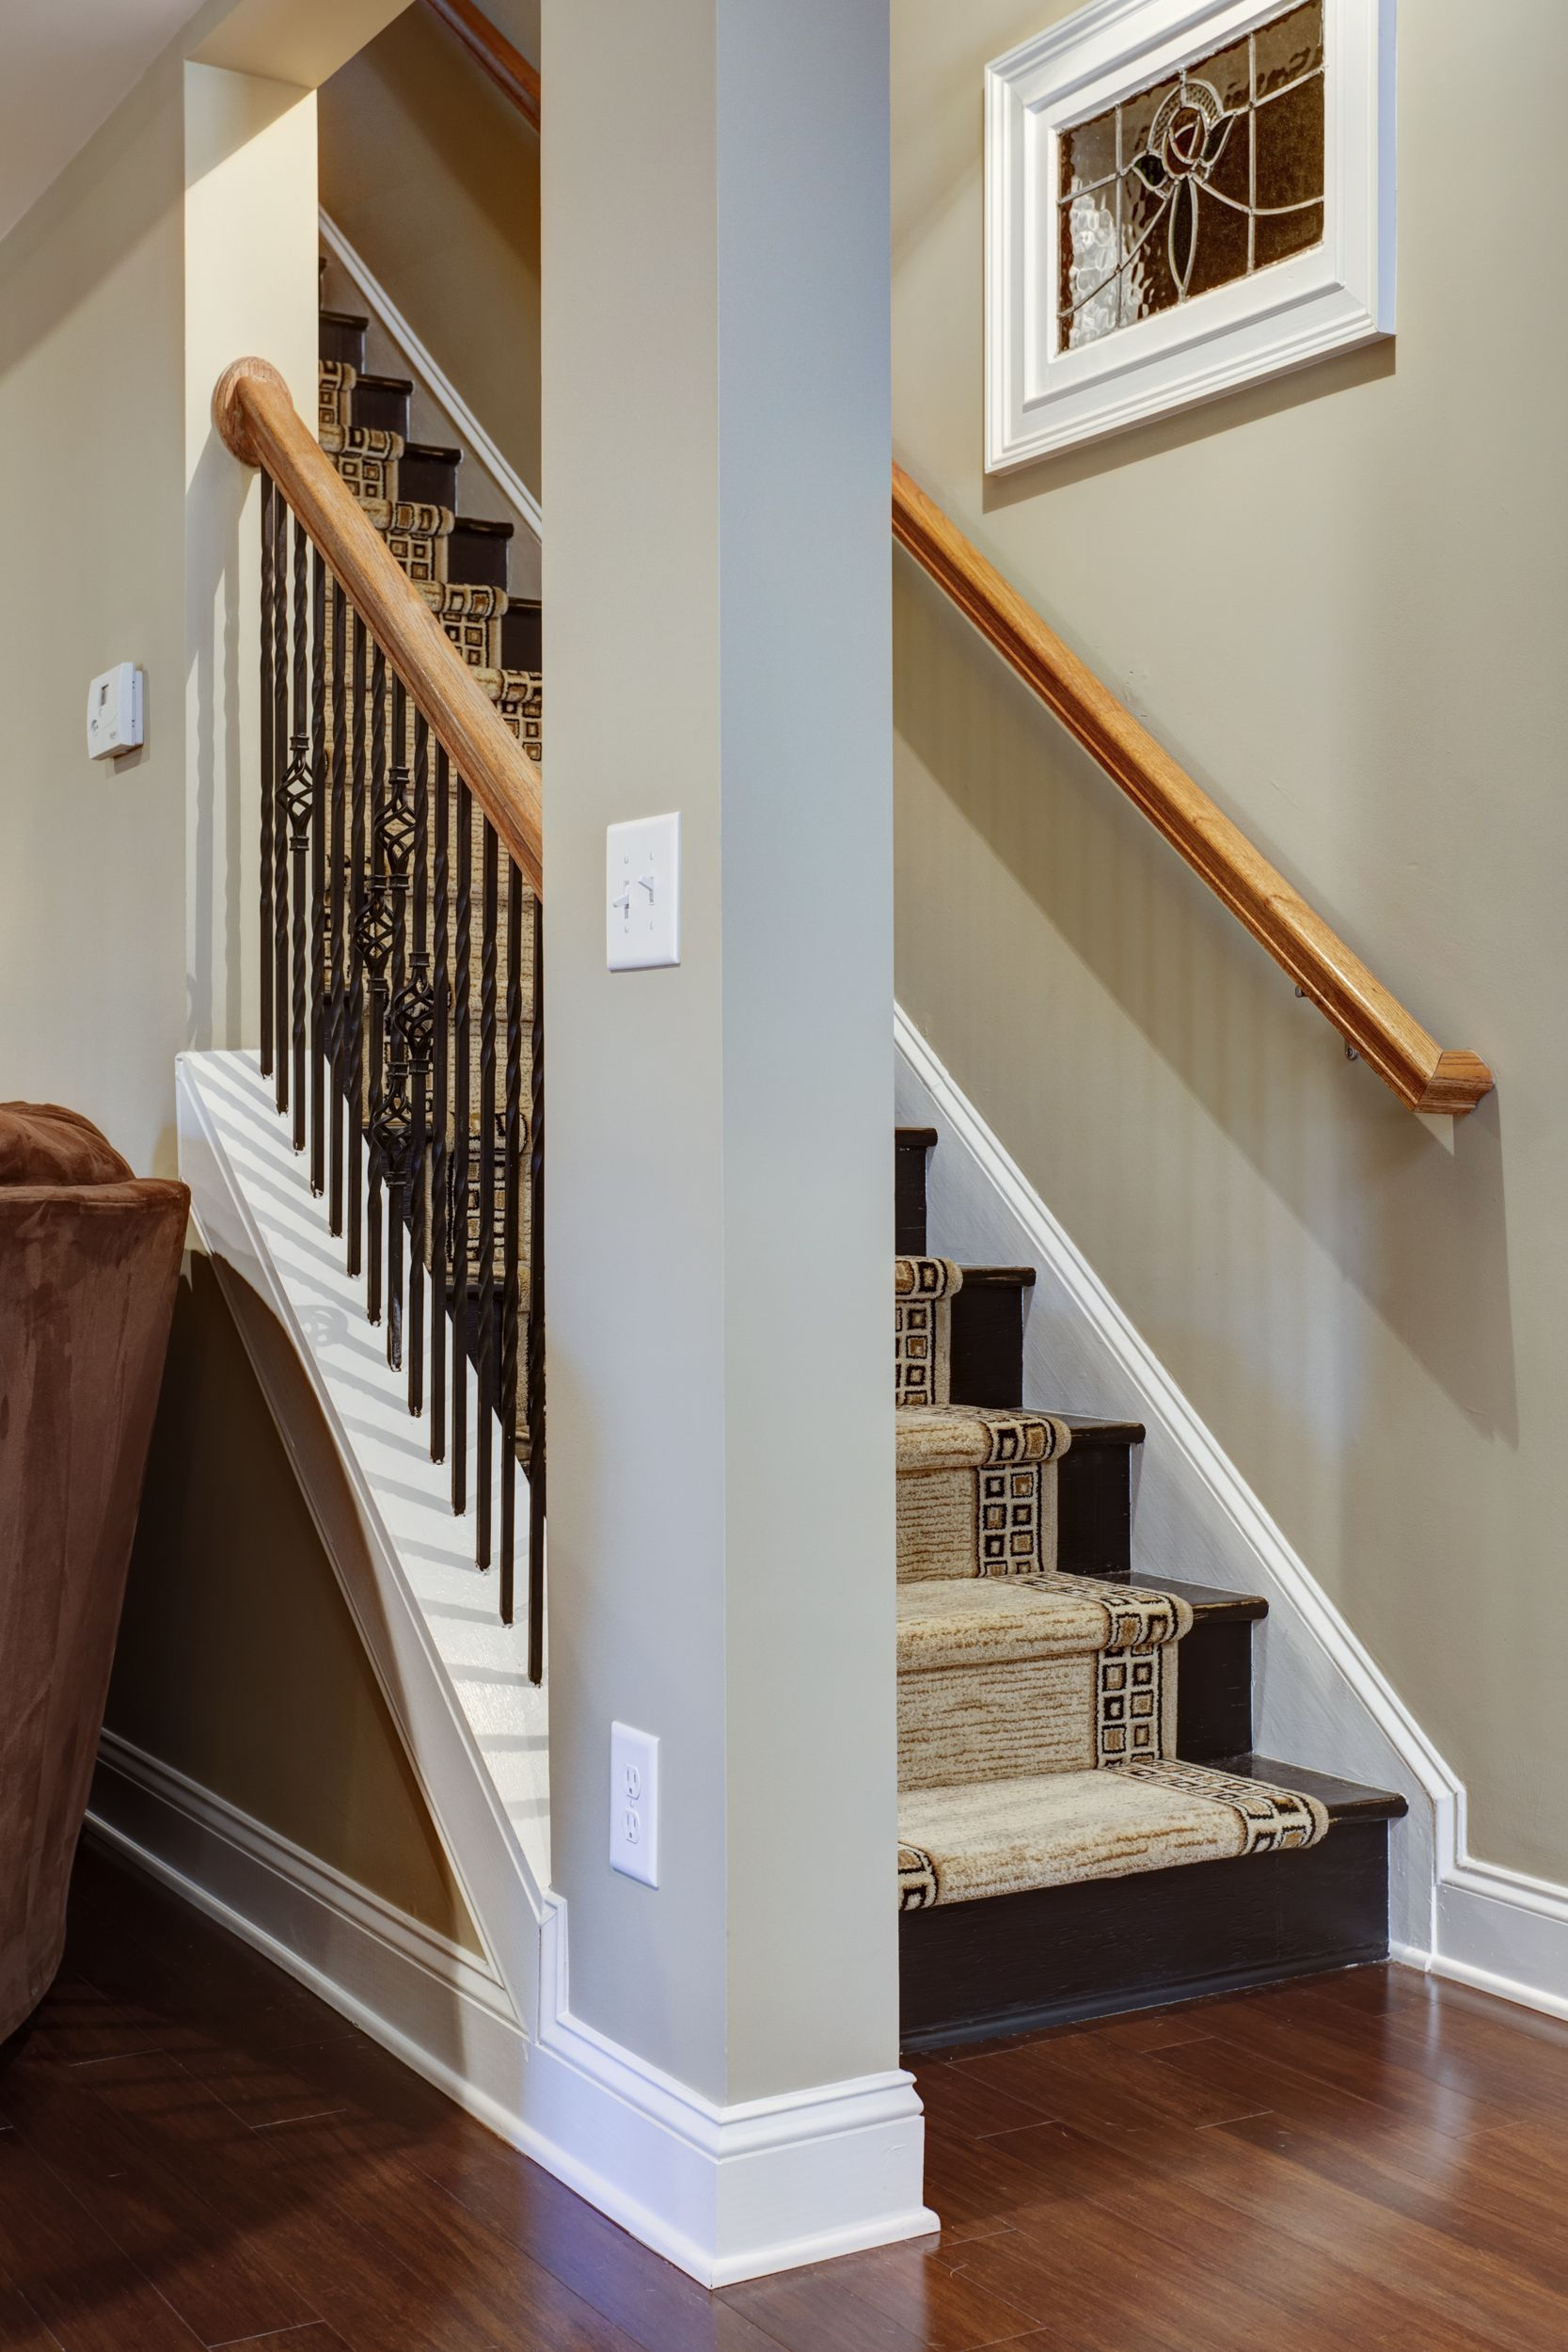 DIY inexpensive stairs in basement. These stairs are